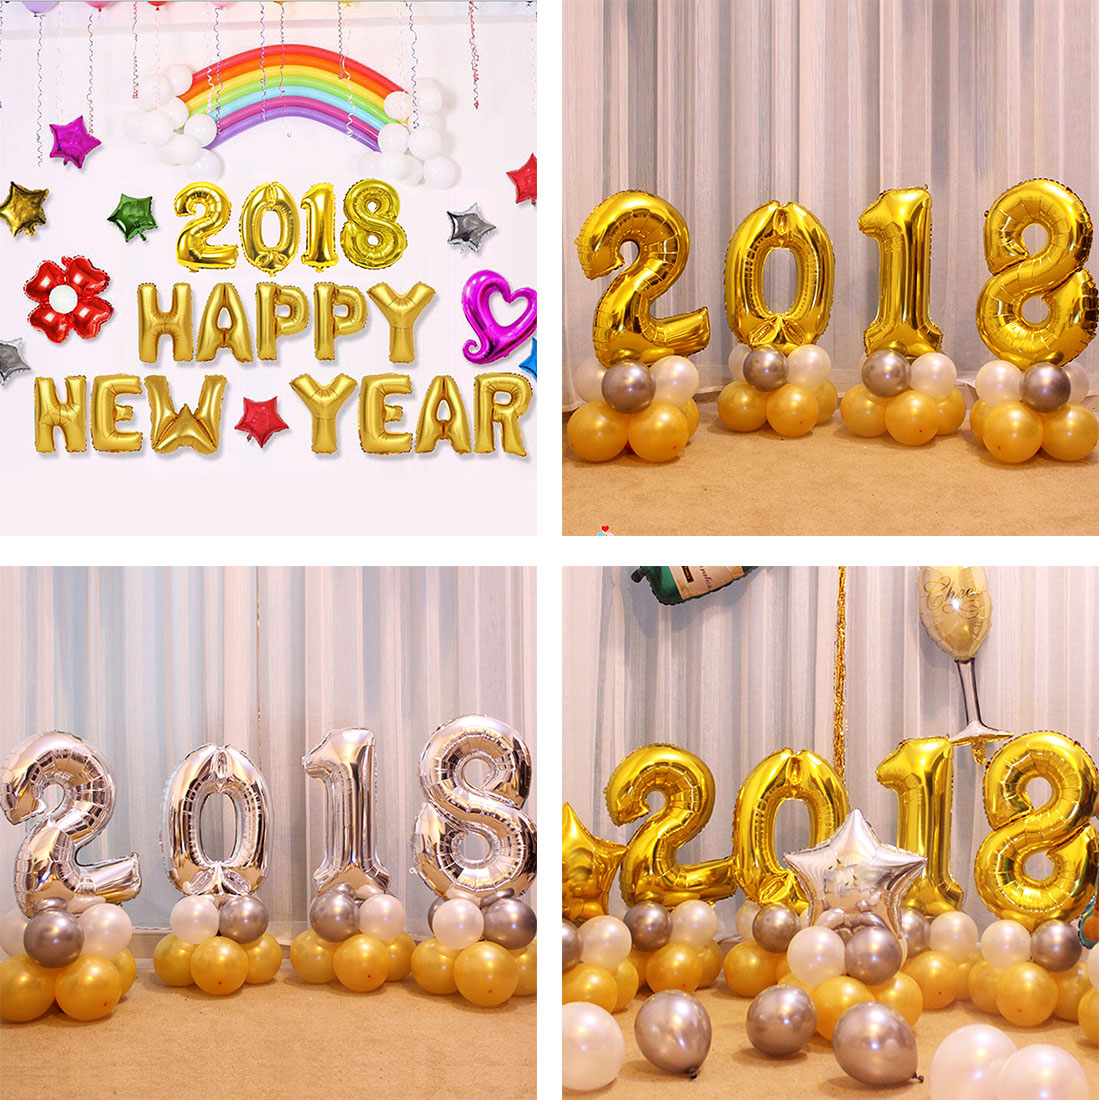 4 Pieces 2018 Number Foil Balloon Digit Air Ballon Happy ...